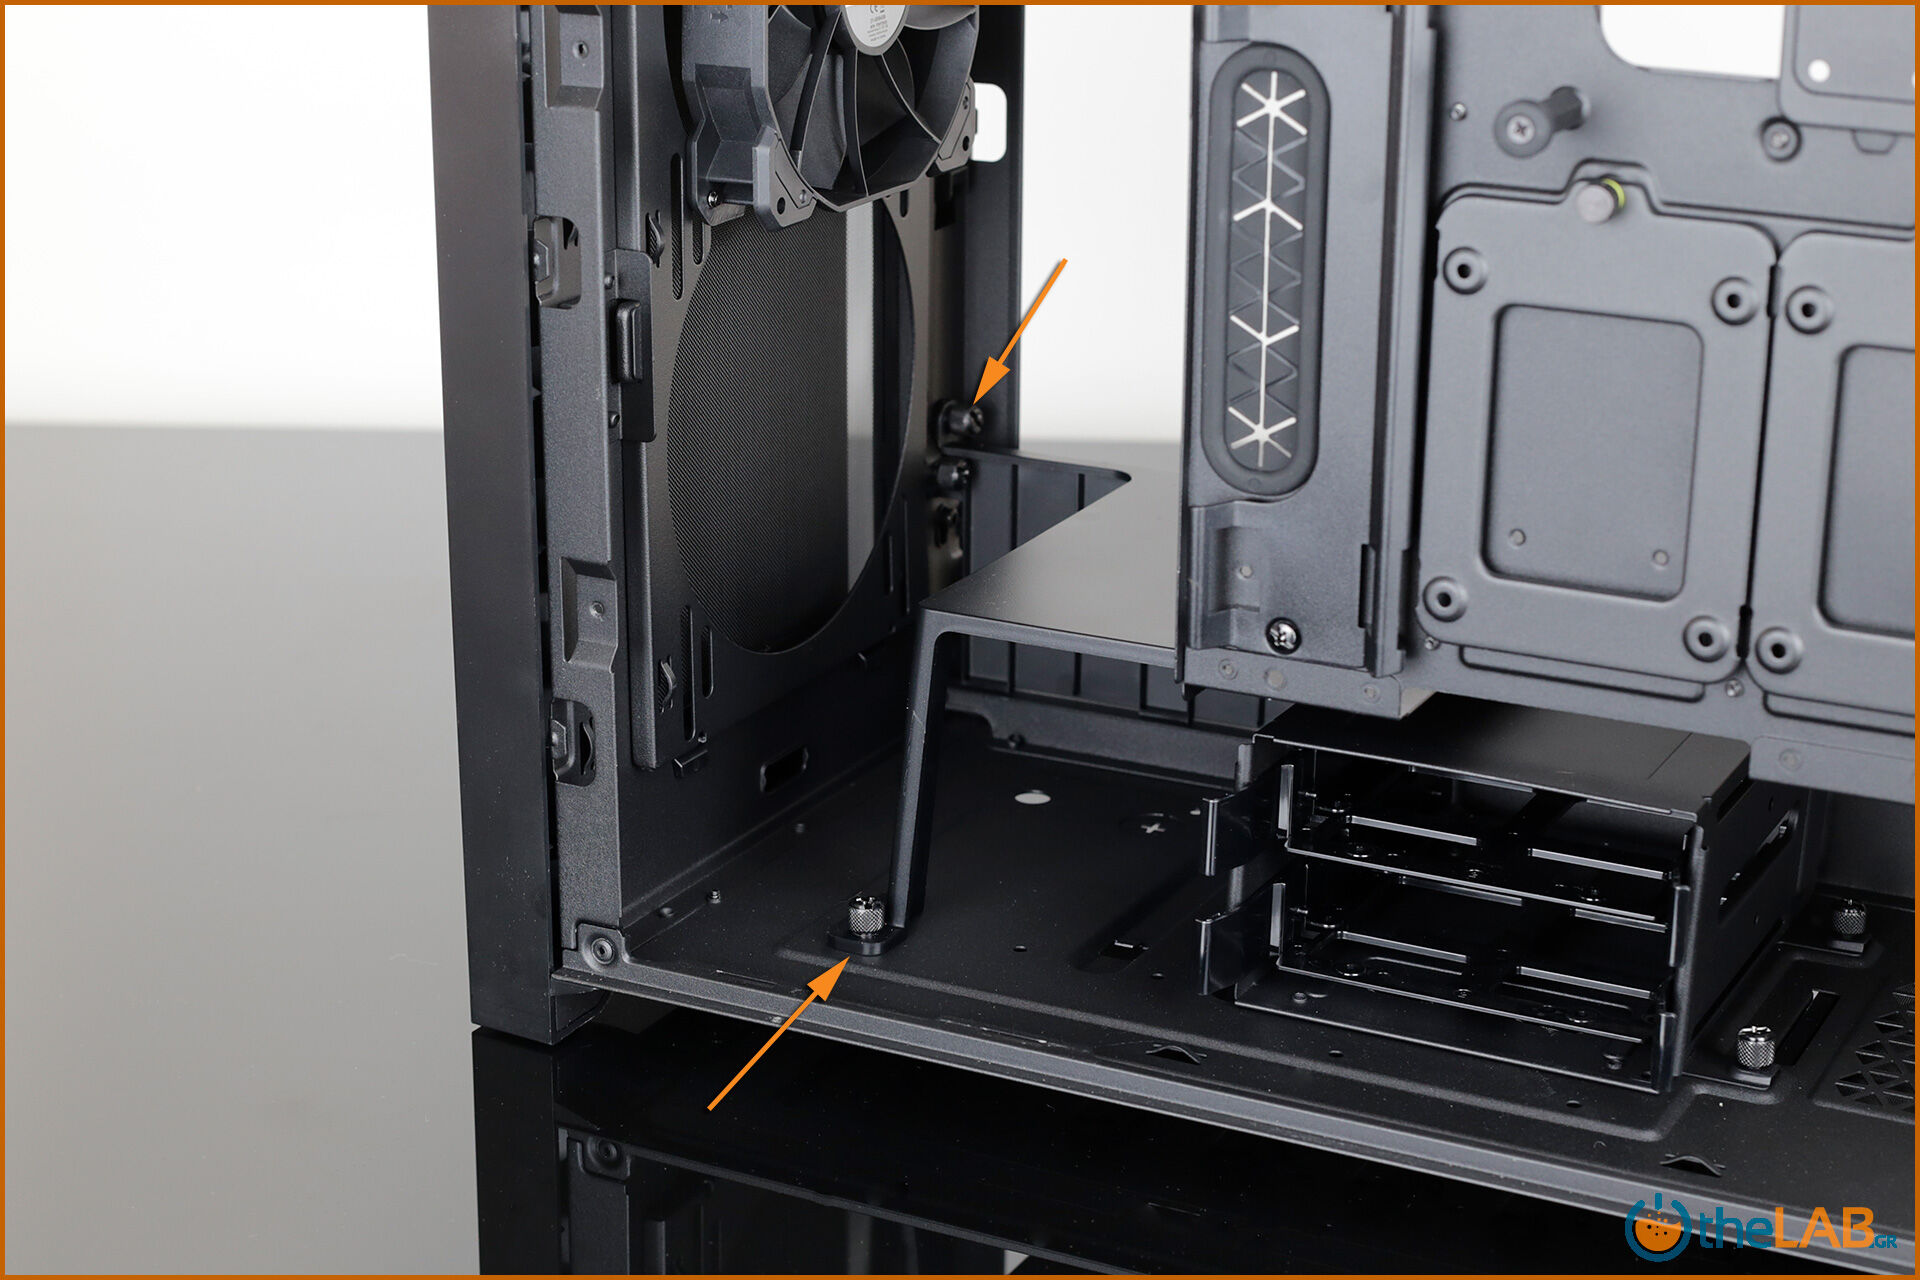 Corsair_icue_5000D__case_smart_exterior_interior_mid_tower_gaming_case_smart_review_image682.jpg